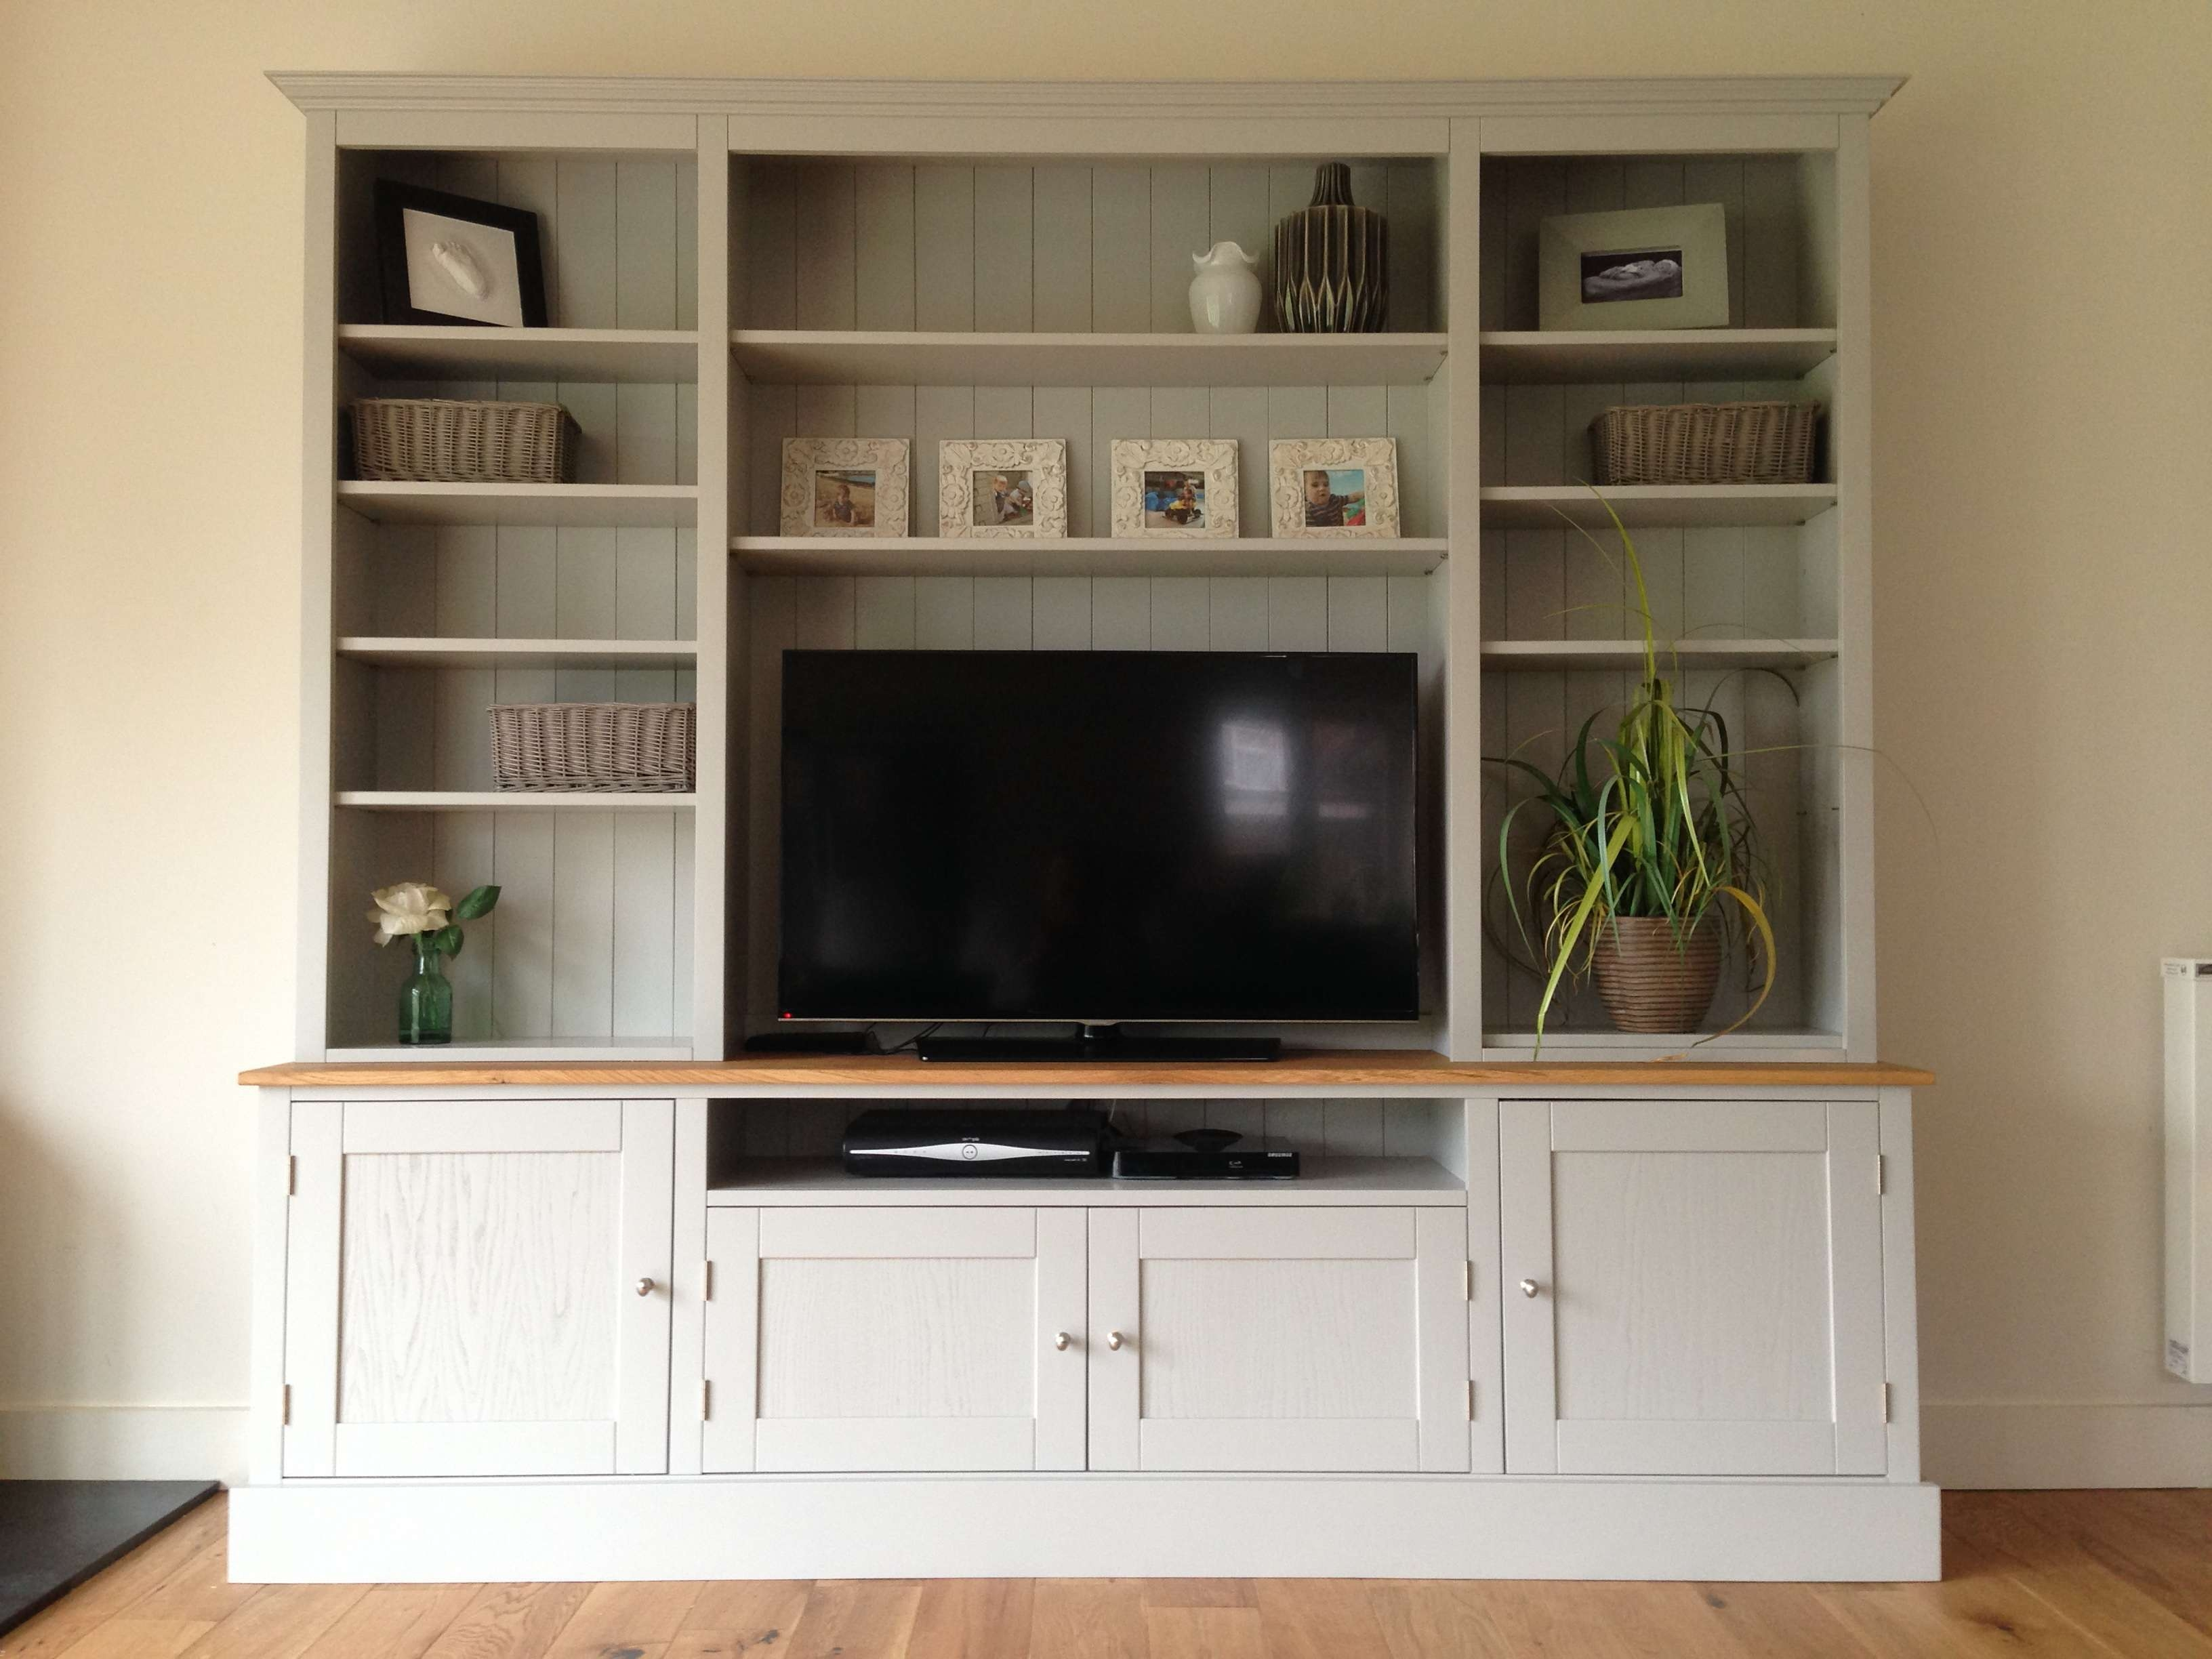 Georgeous 7Ft Painted Tv Unit / Dresser – Nest At Number 20 Inside Painted Tv Stands (View 6 of 15)